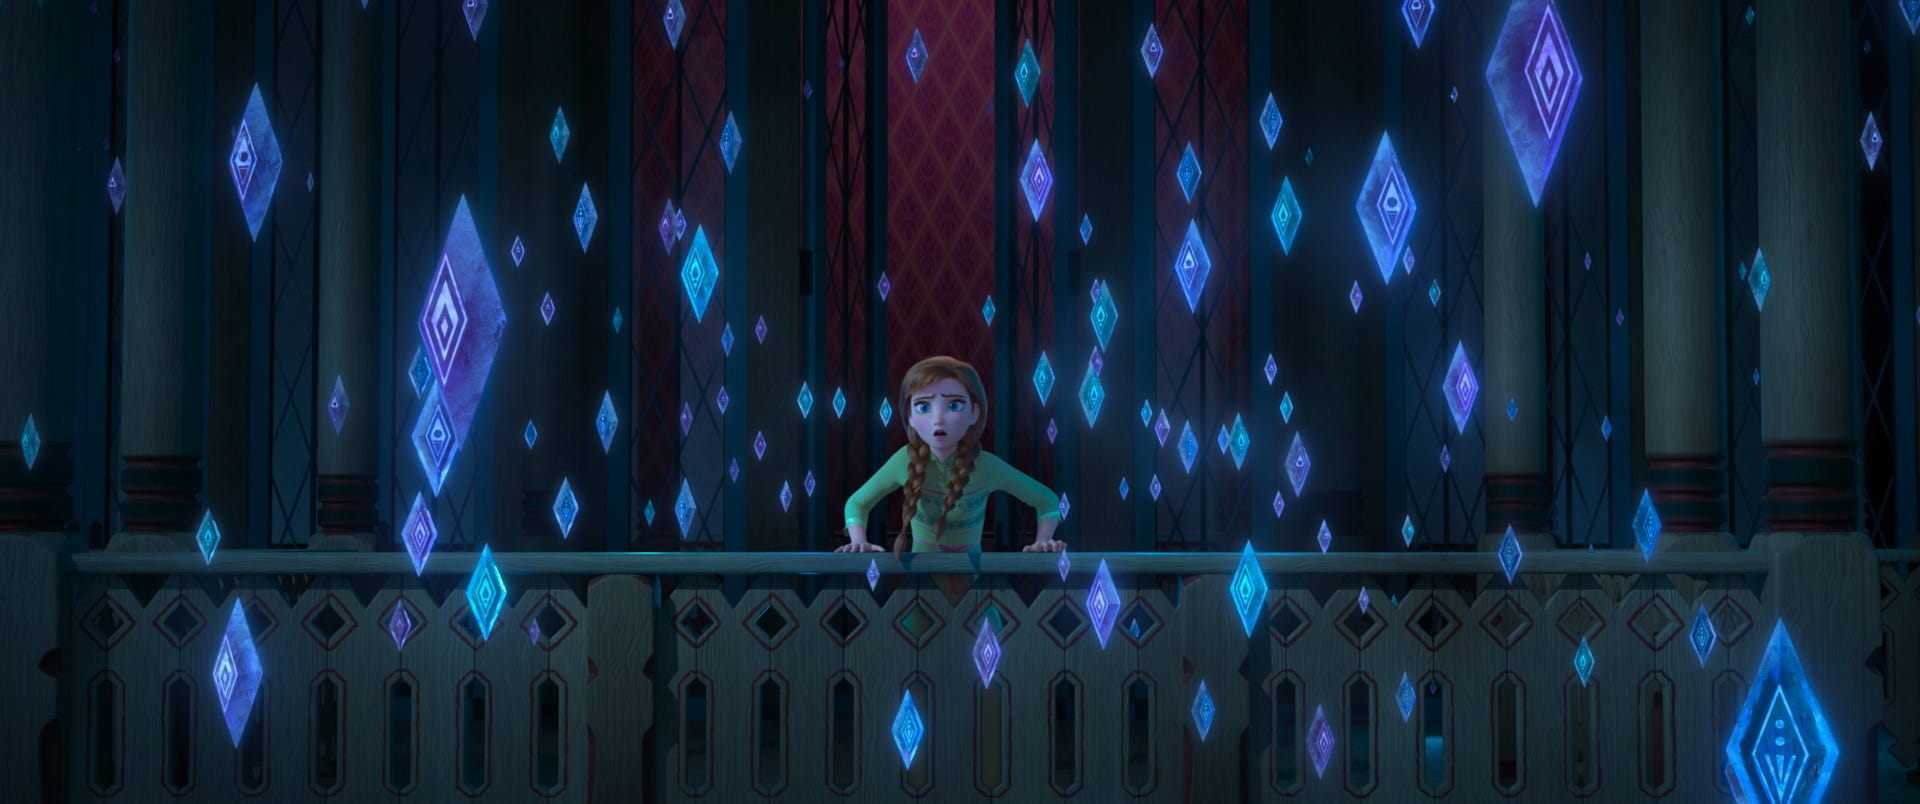 Frozen 2 Anna Elsa Kristoff And Olaf Face Existential Crises